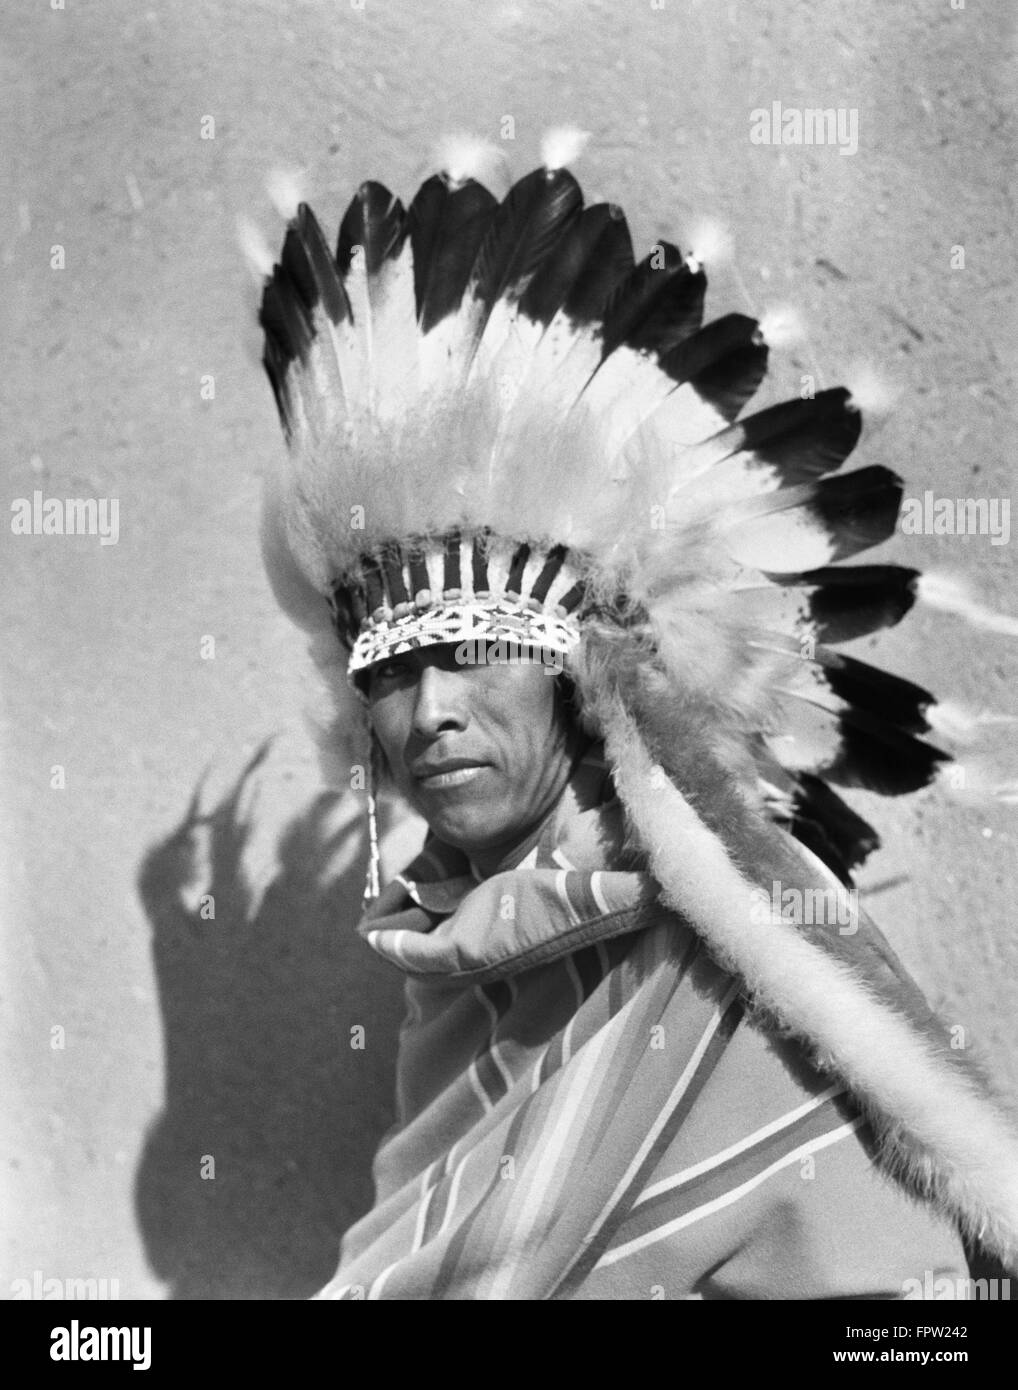 1930s NATIVE AMERICAN MAN WEARING FULL FEATHERED HEADDRESS WAR BONNET LOOKING AT CAMERA SAN ILDEFONSO PUEBLO NEW - Stock Image